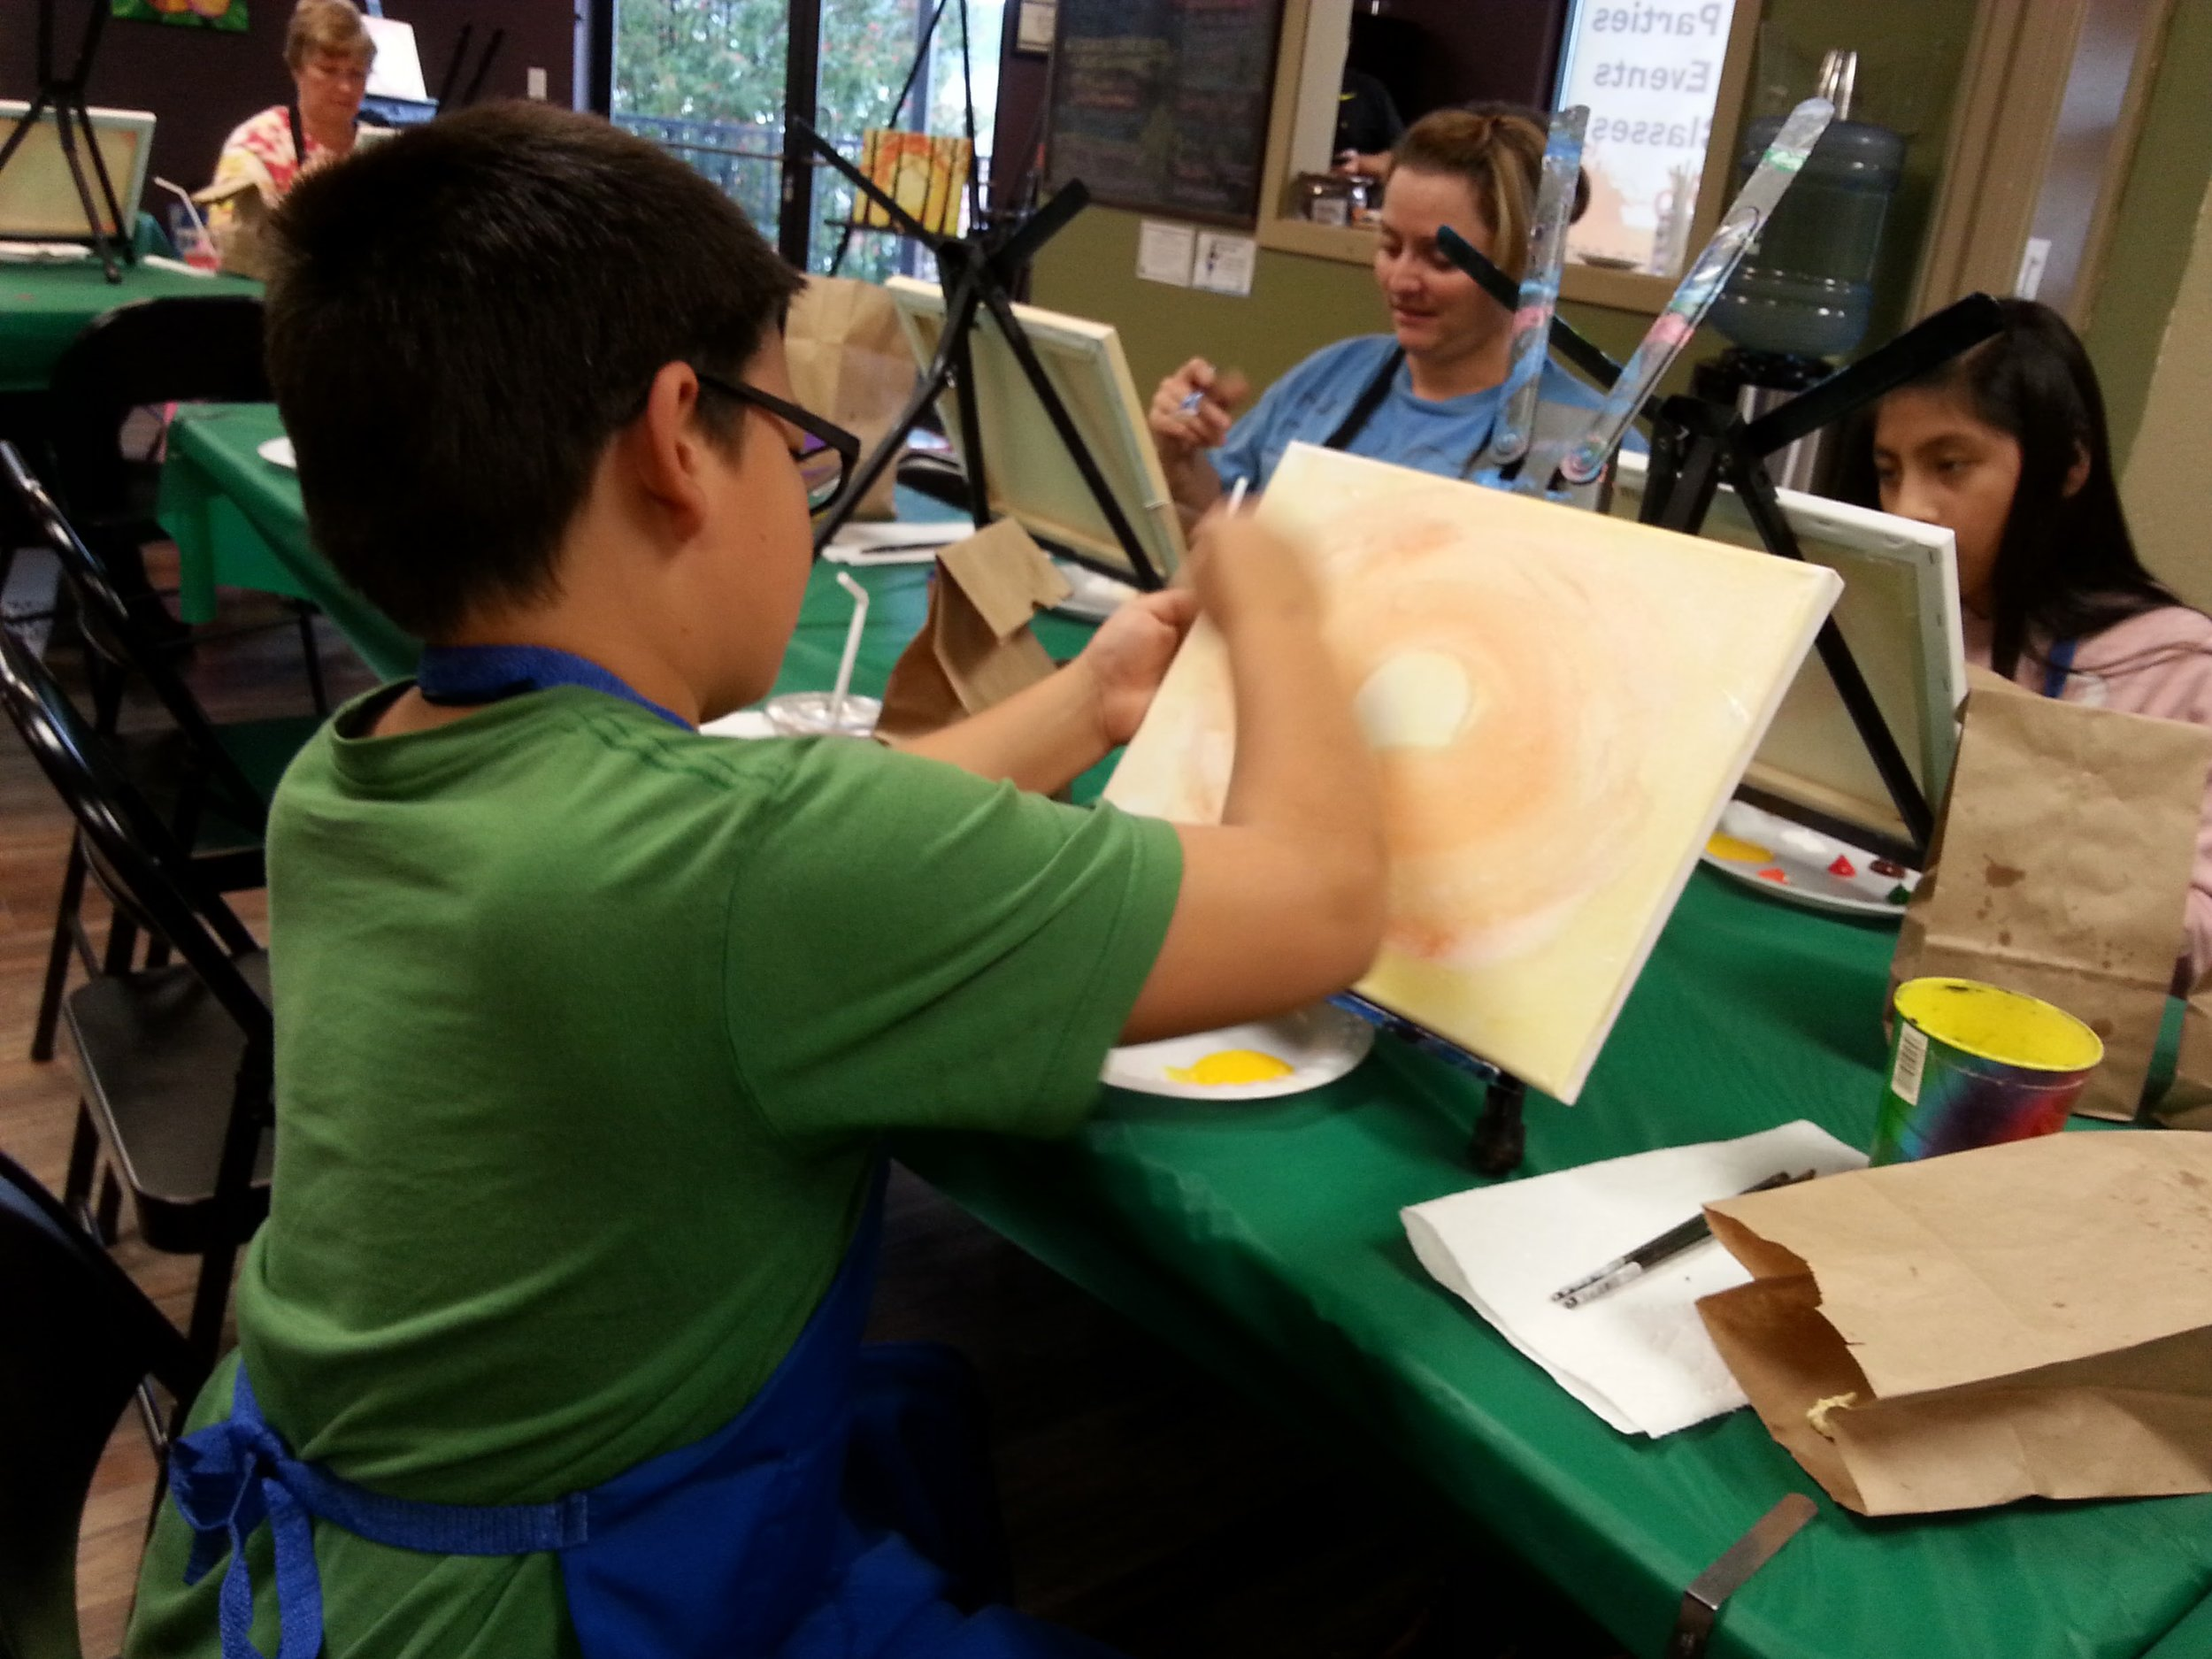 ART4JOY - What to do in Southern Oregon -Things to do in Central Point